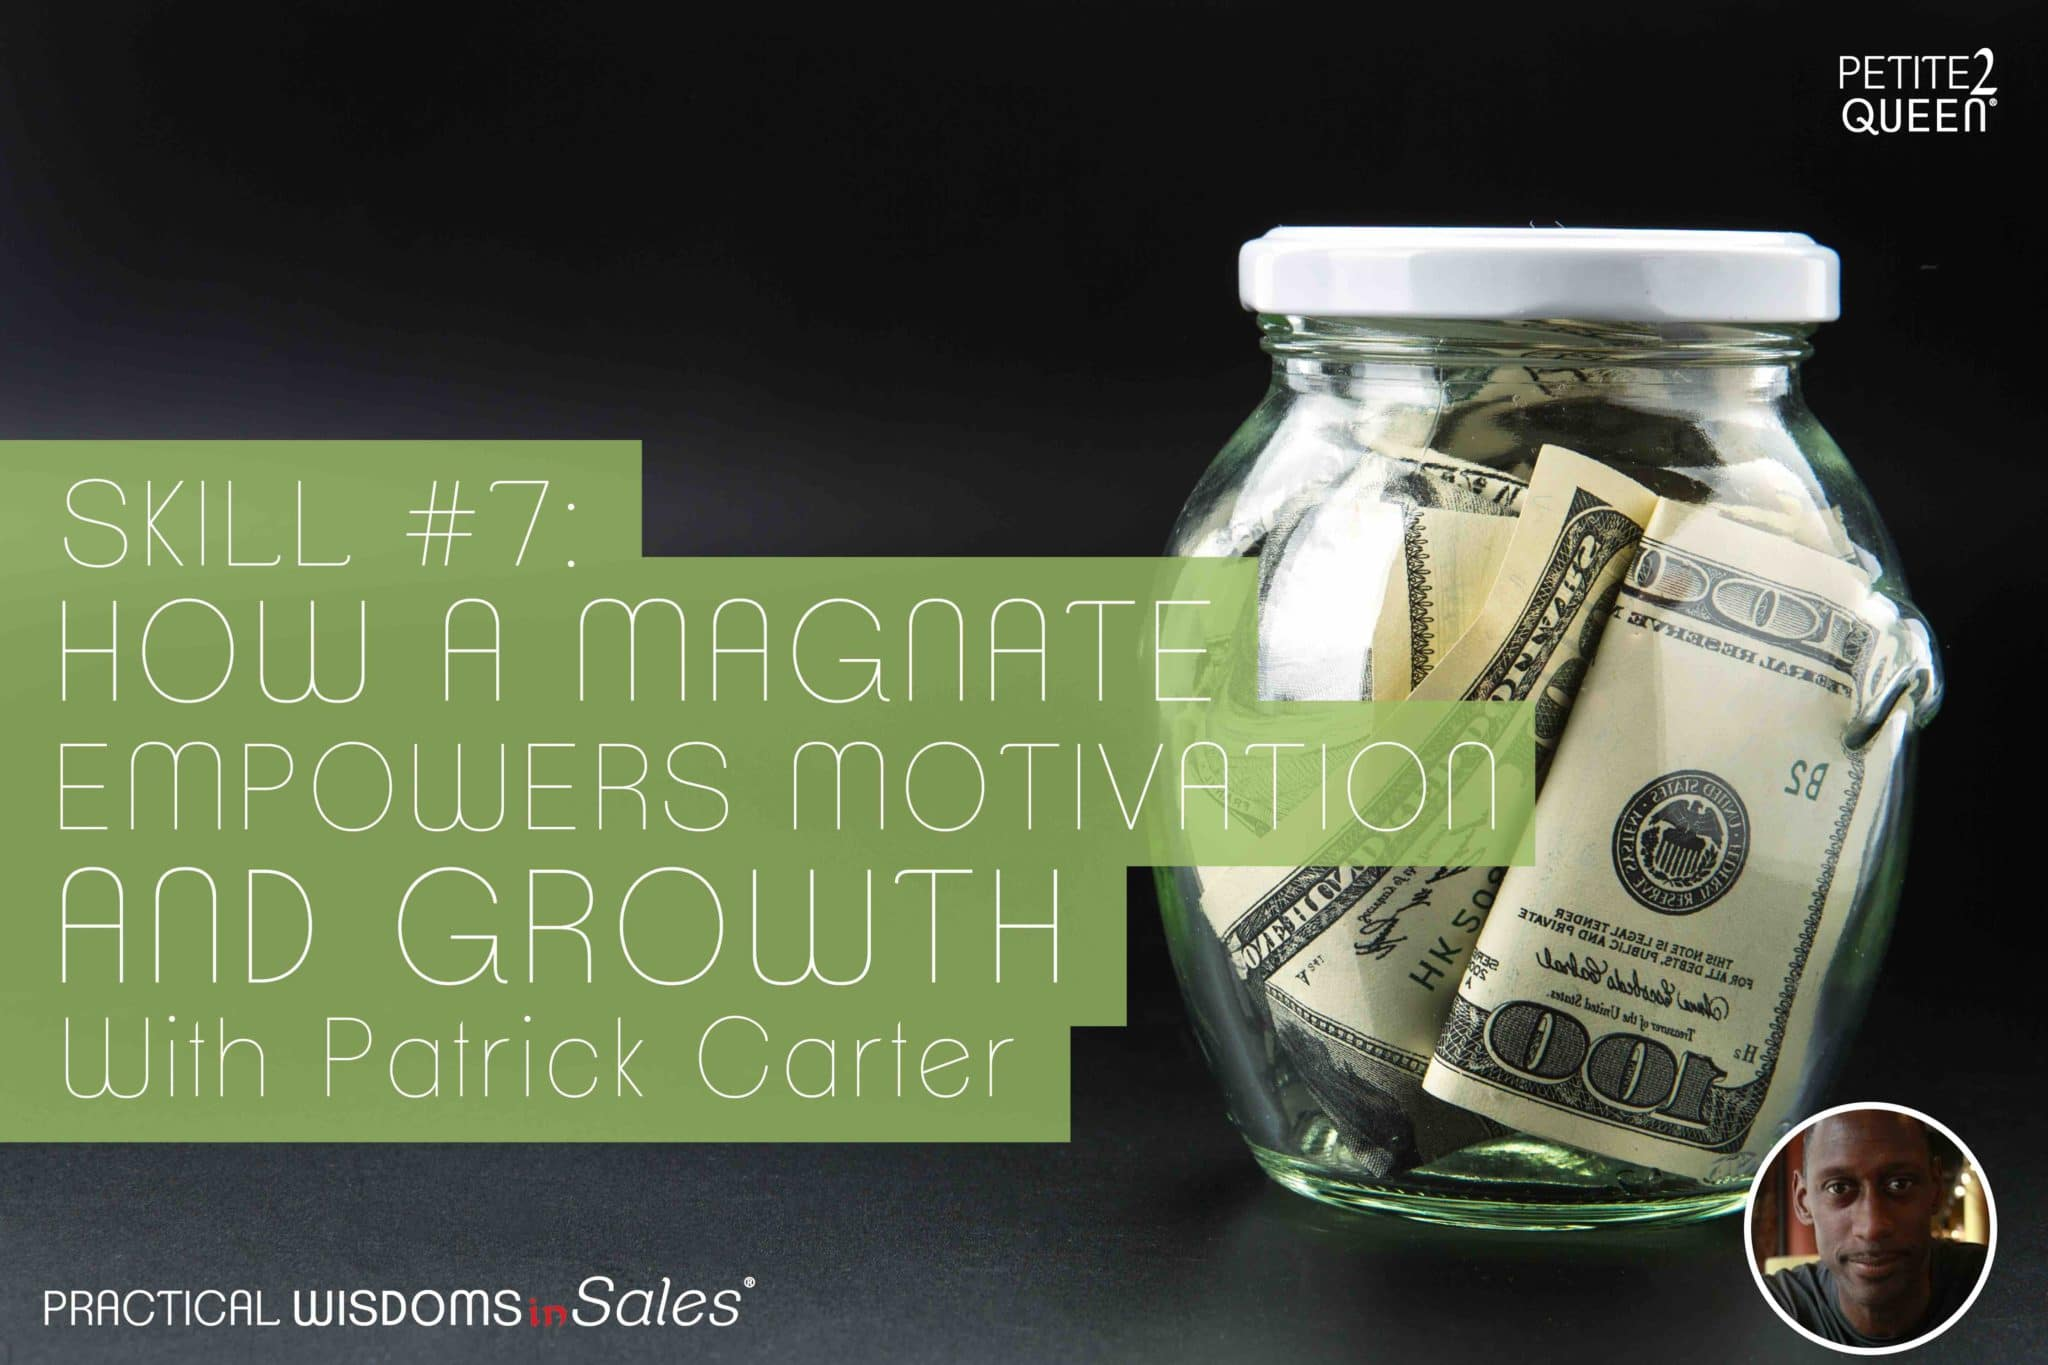 Skill #7 - How a Magnate Empowers Motivation and Growth - Patrick Carter